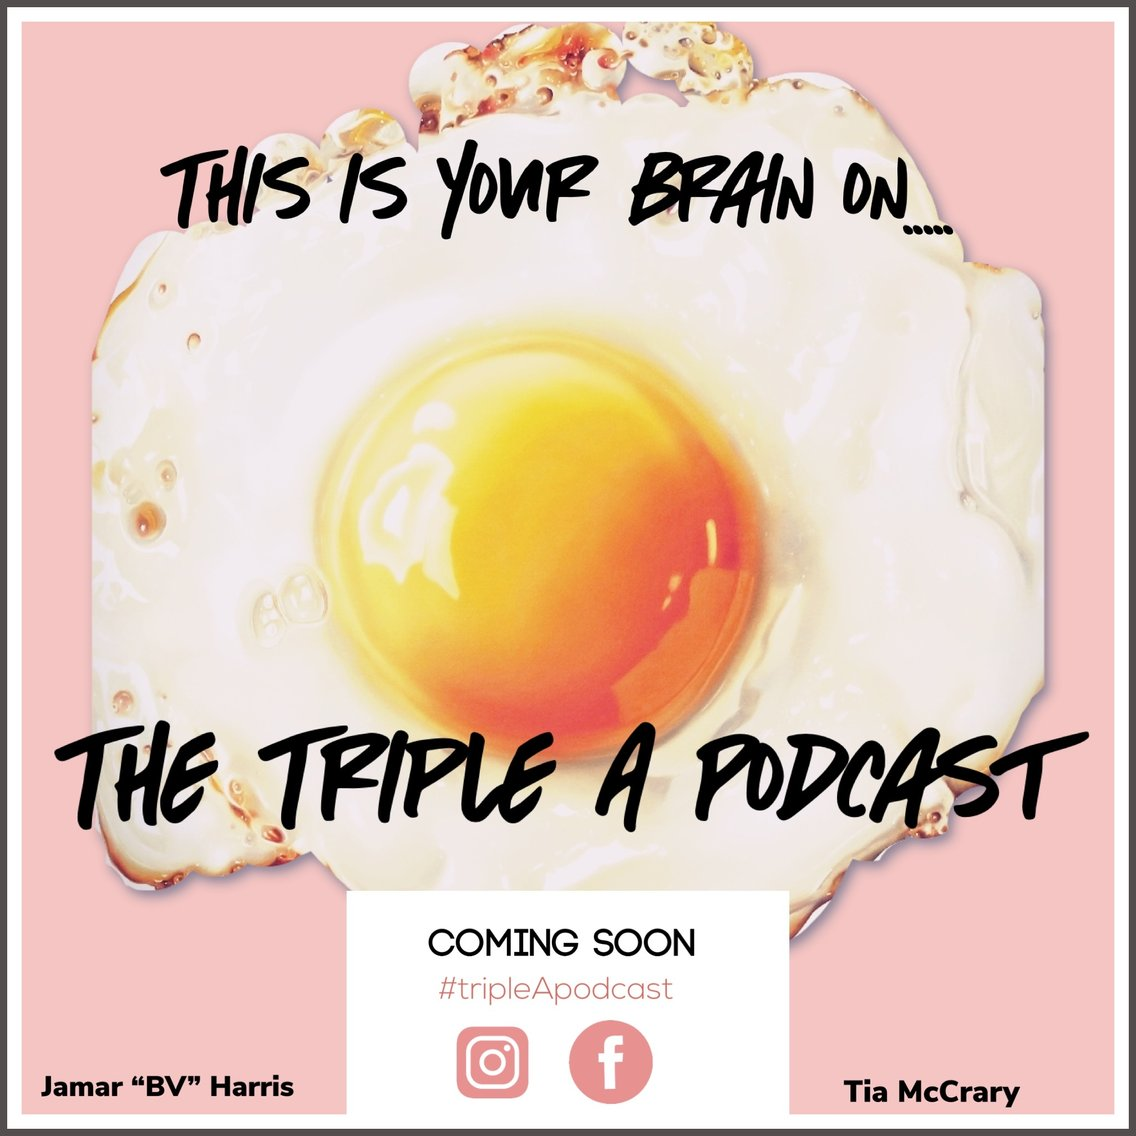 The Triple A Podcast - Cover Image